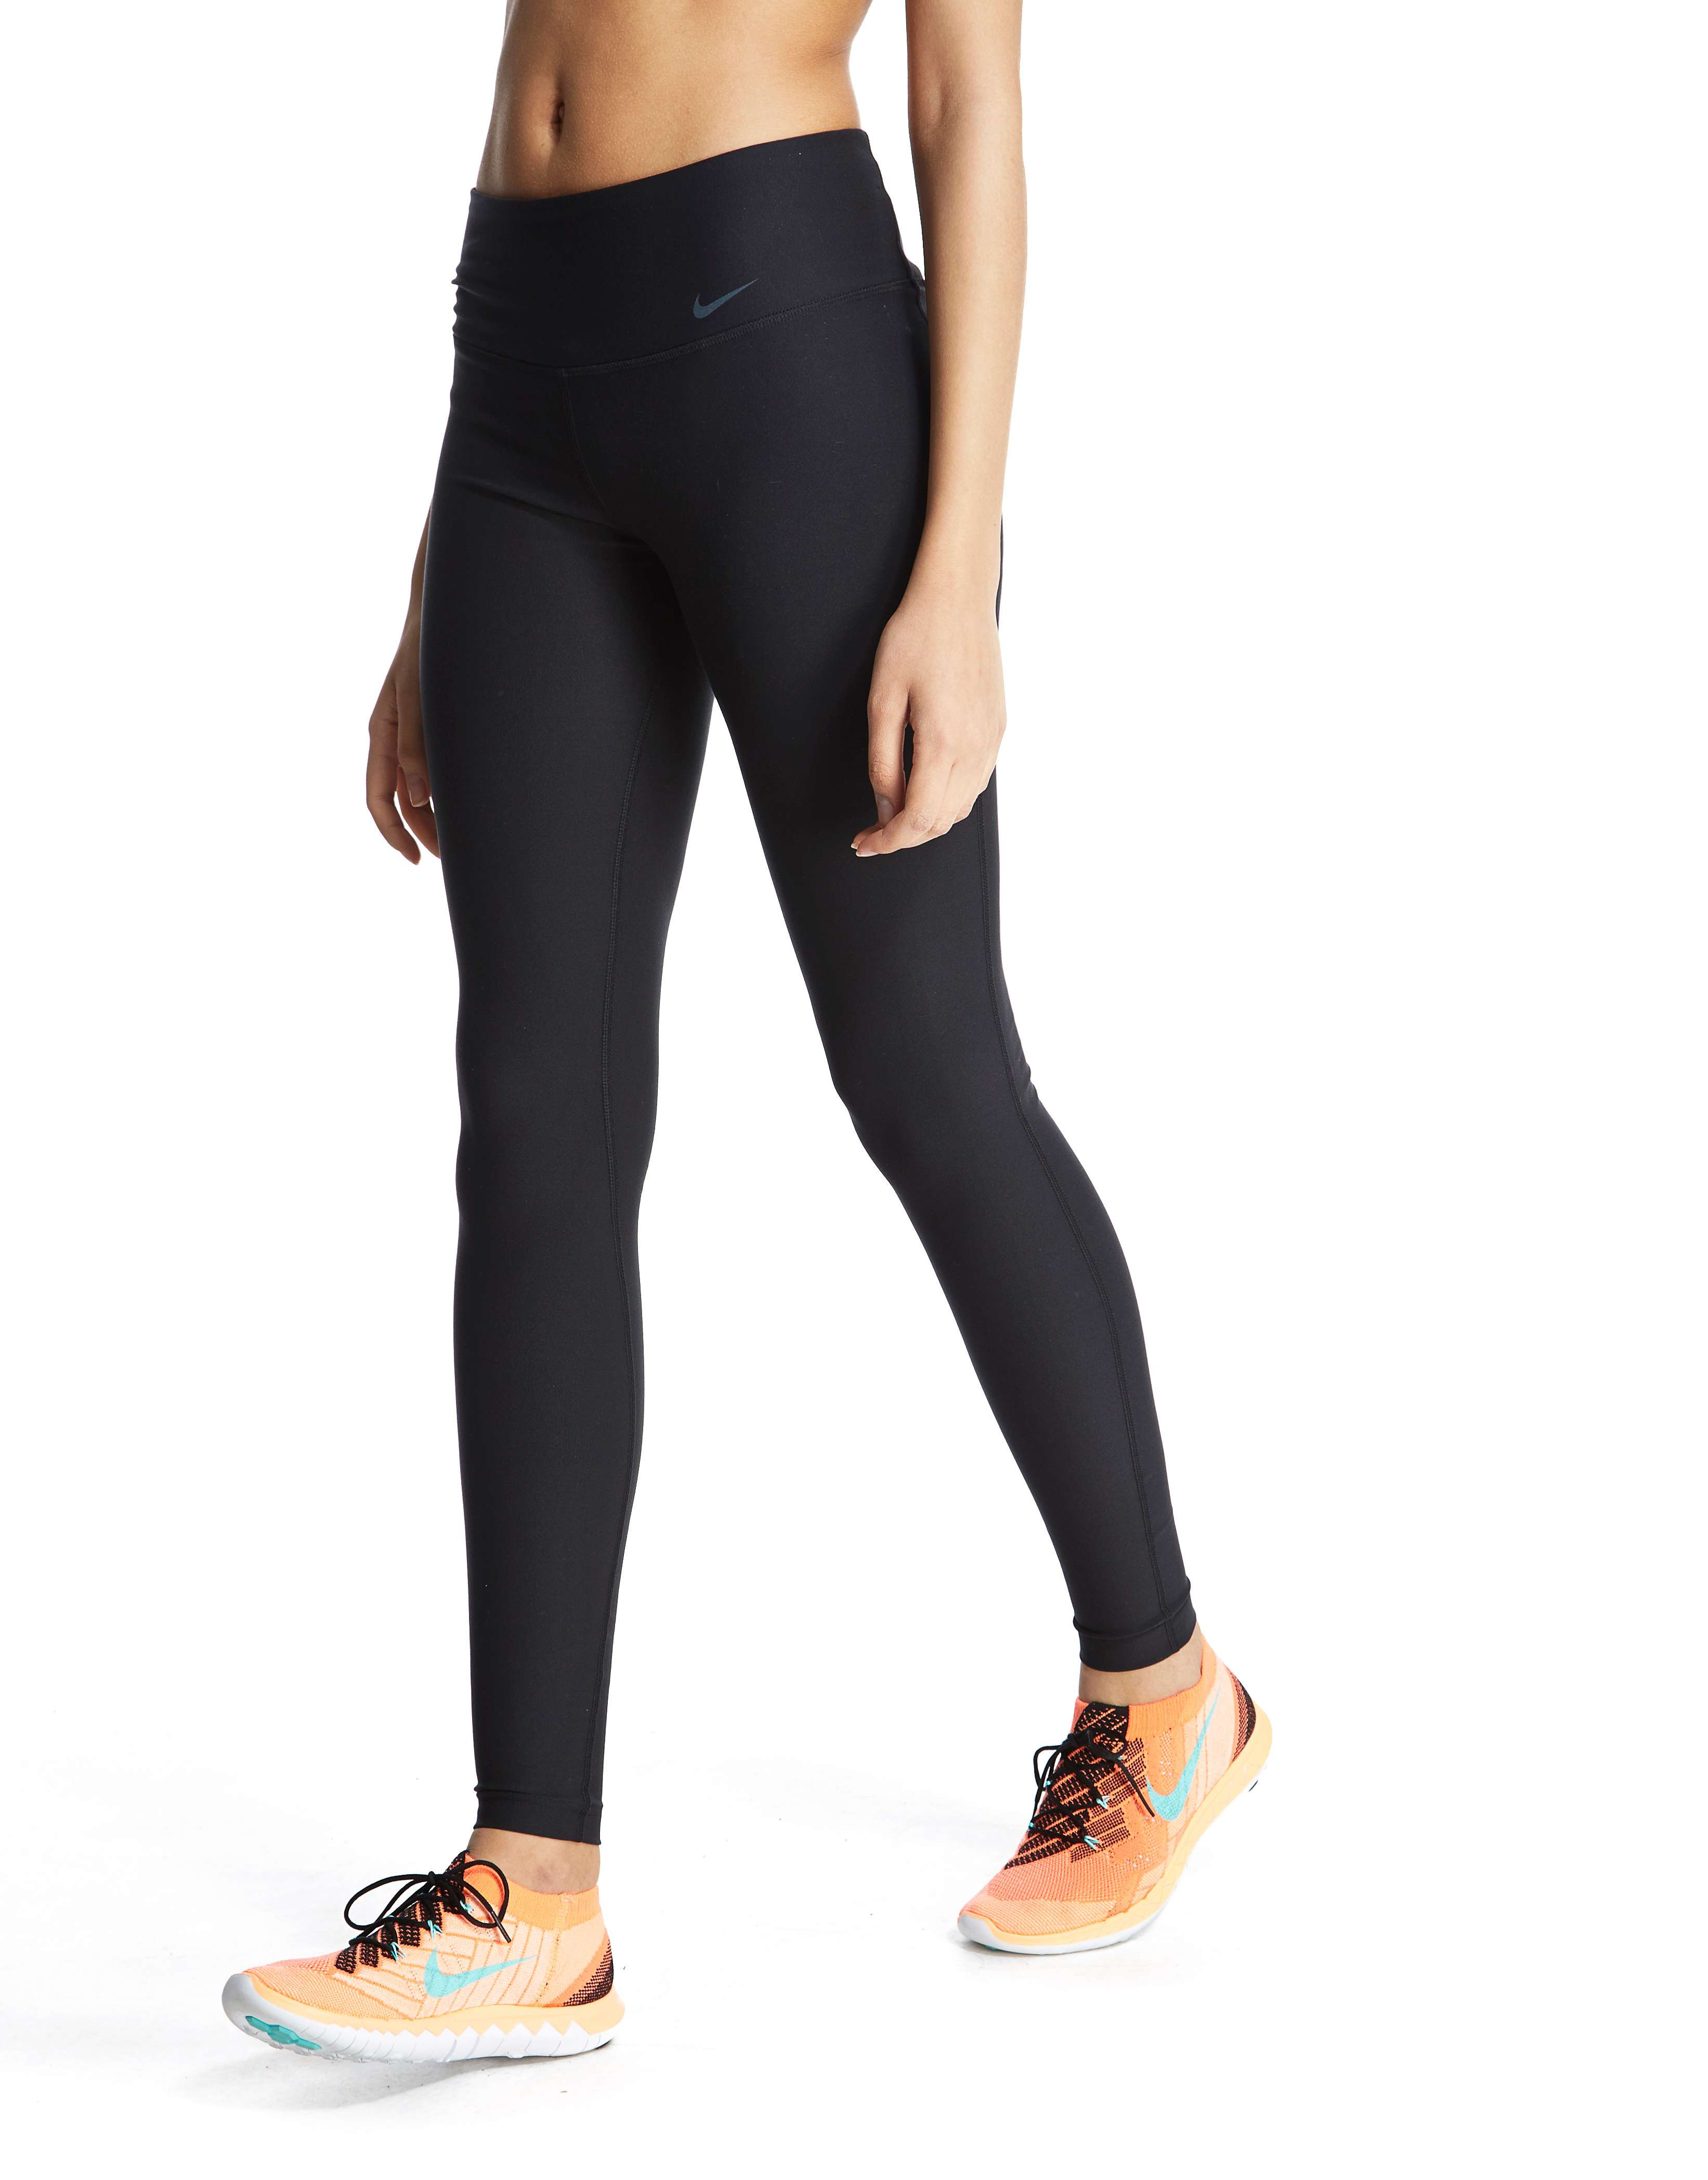 sale various design available Nike Legend 2.0 Tights | JD Sports